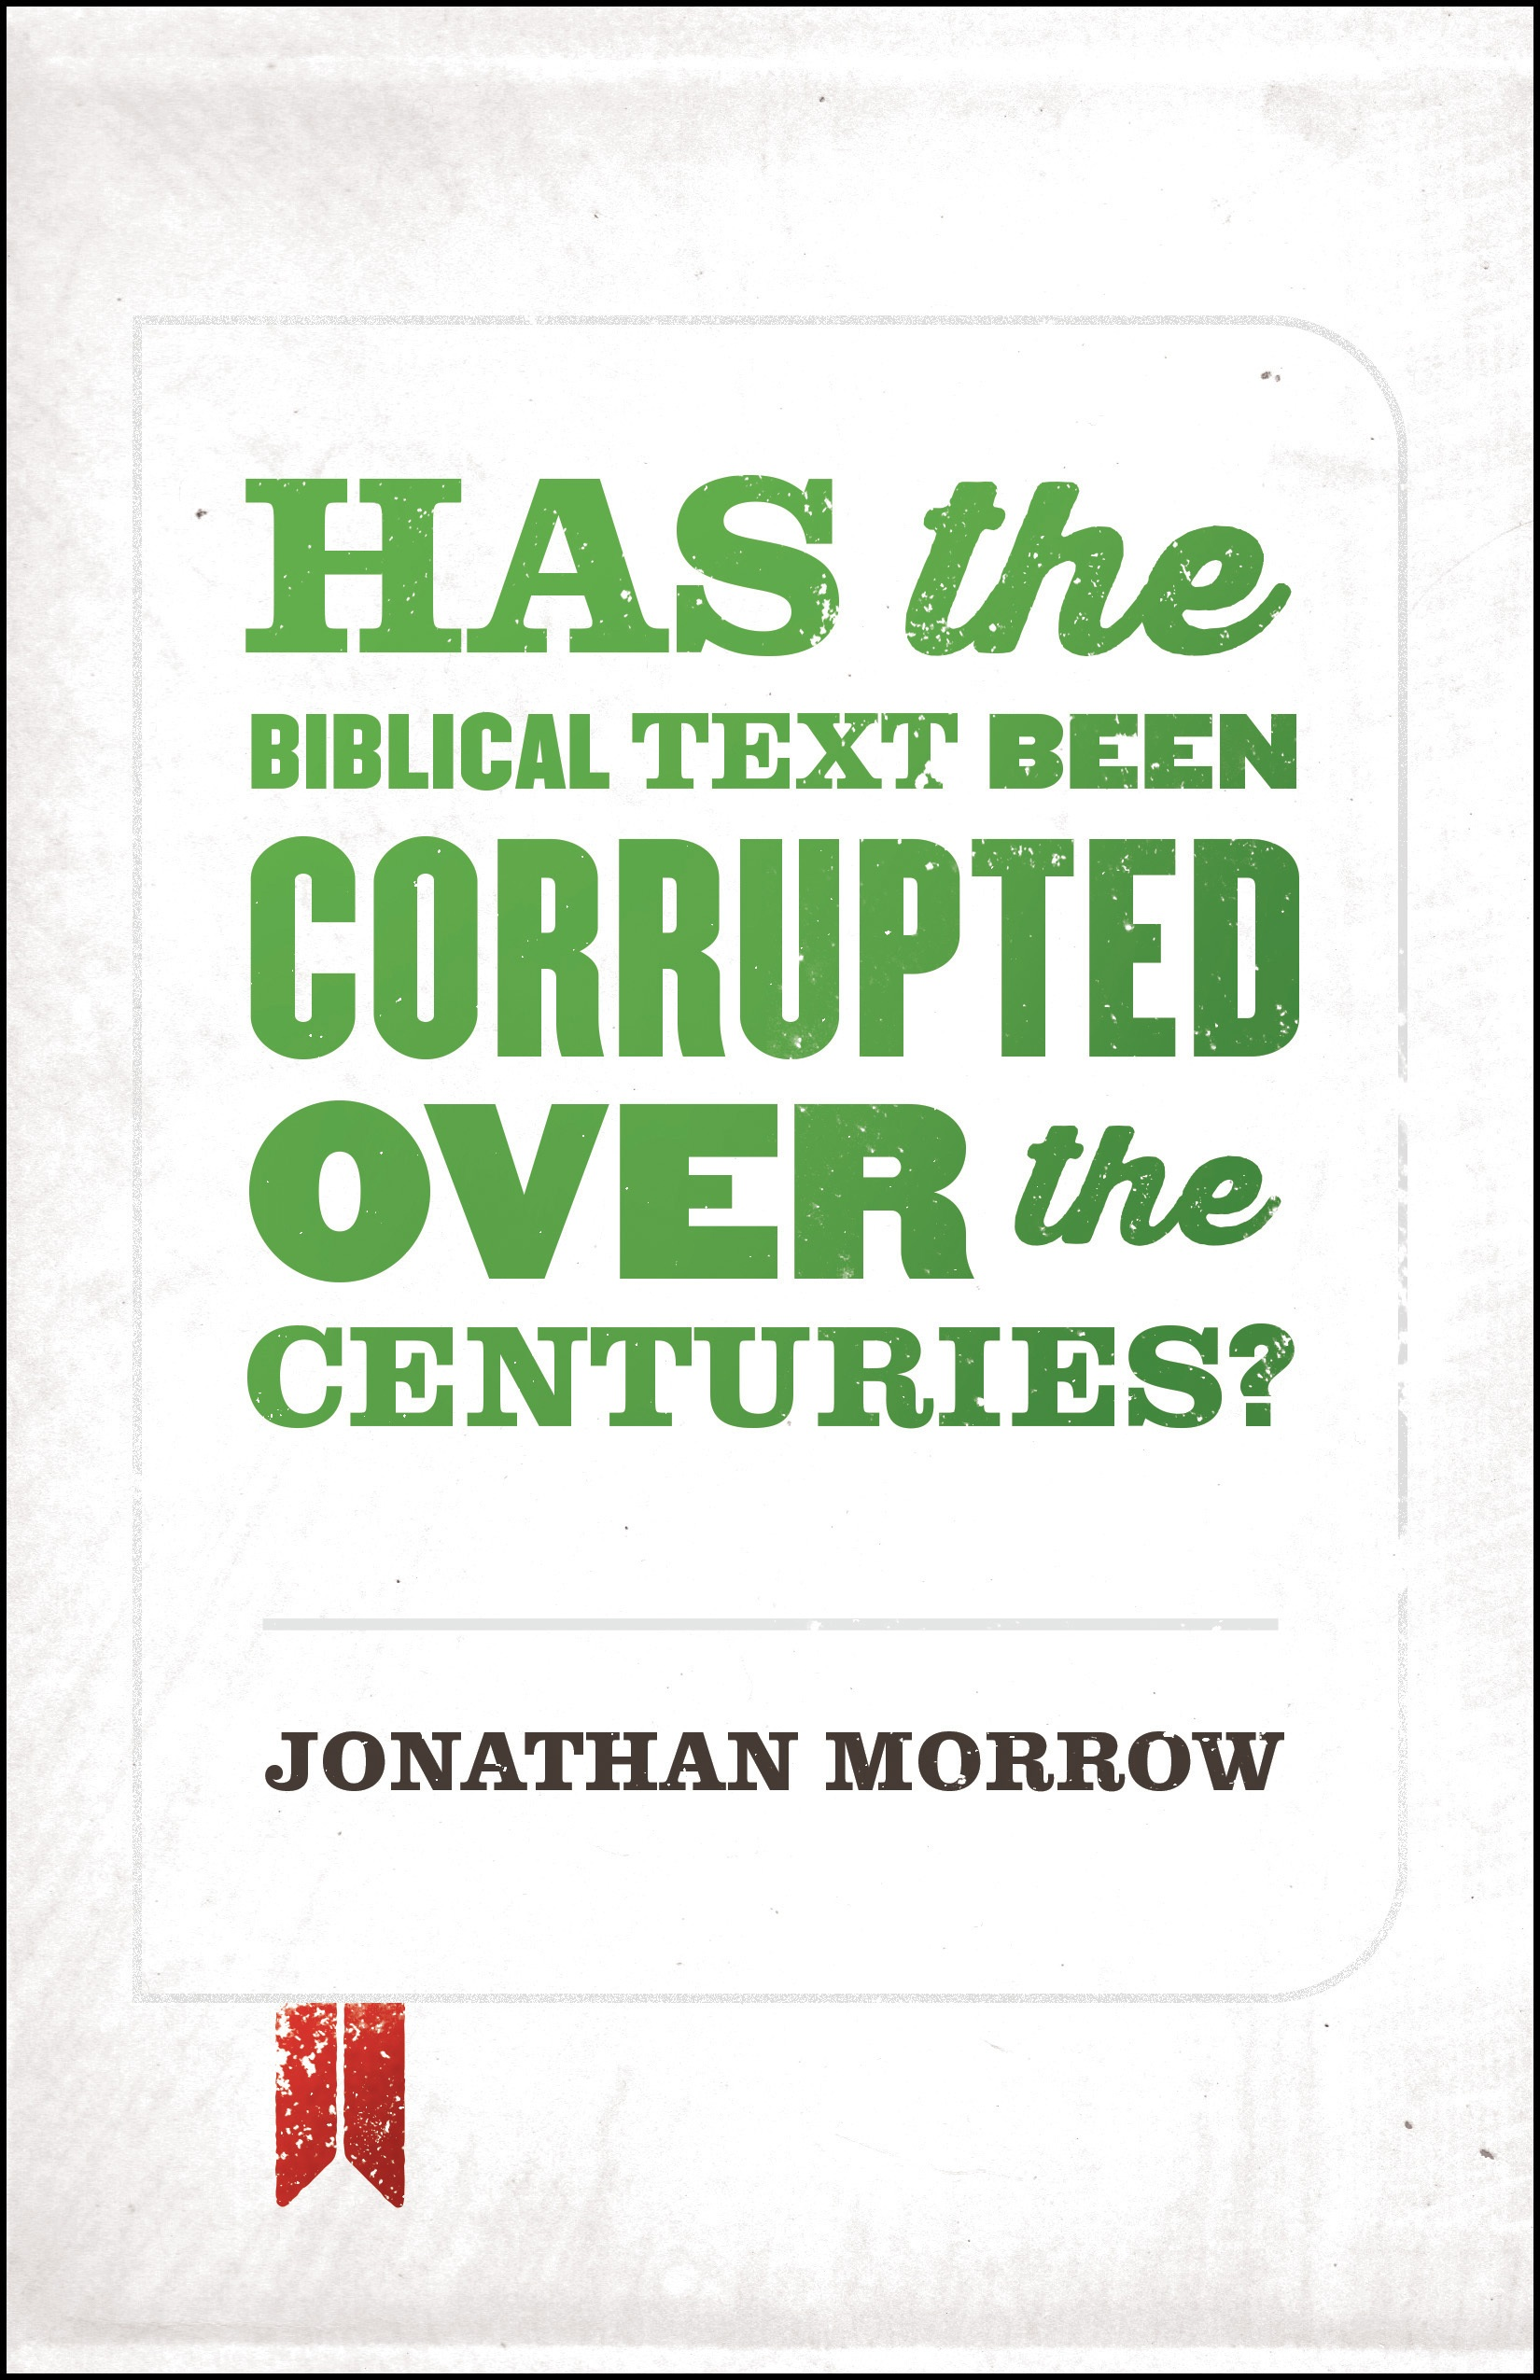 Is the Old Testament Reliable? (A Short Summary) - Jonathan Morrow